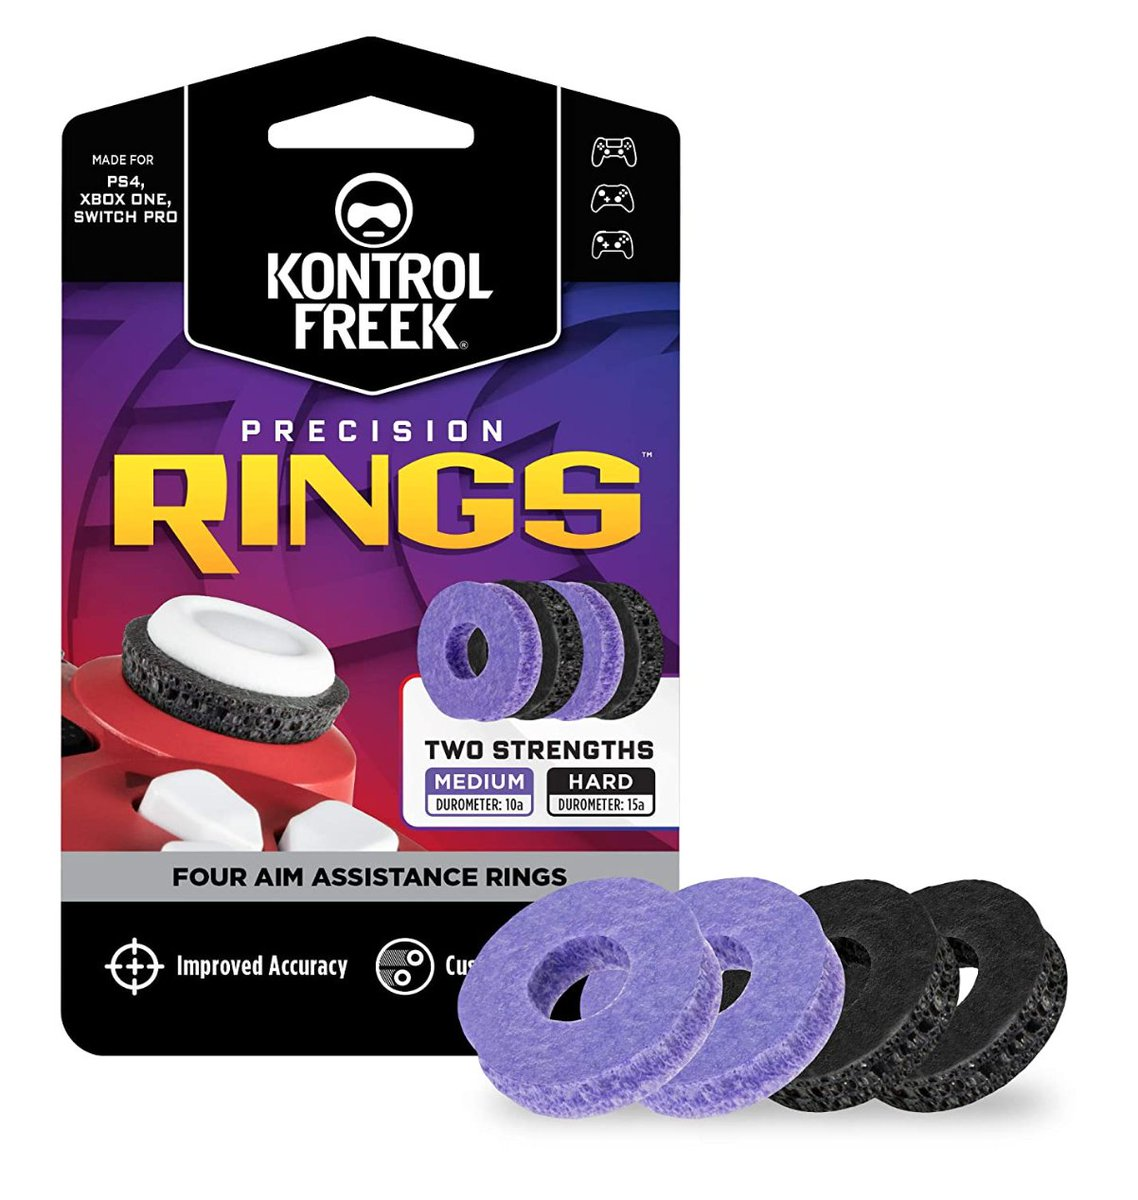 KontrolFreek Precision Rings Aim Assist Motion Control for PS5, PS4 & others   Amazon USA 16